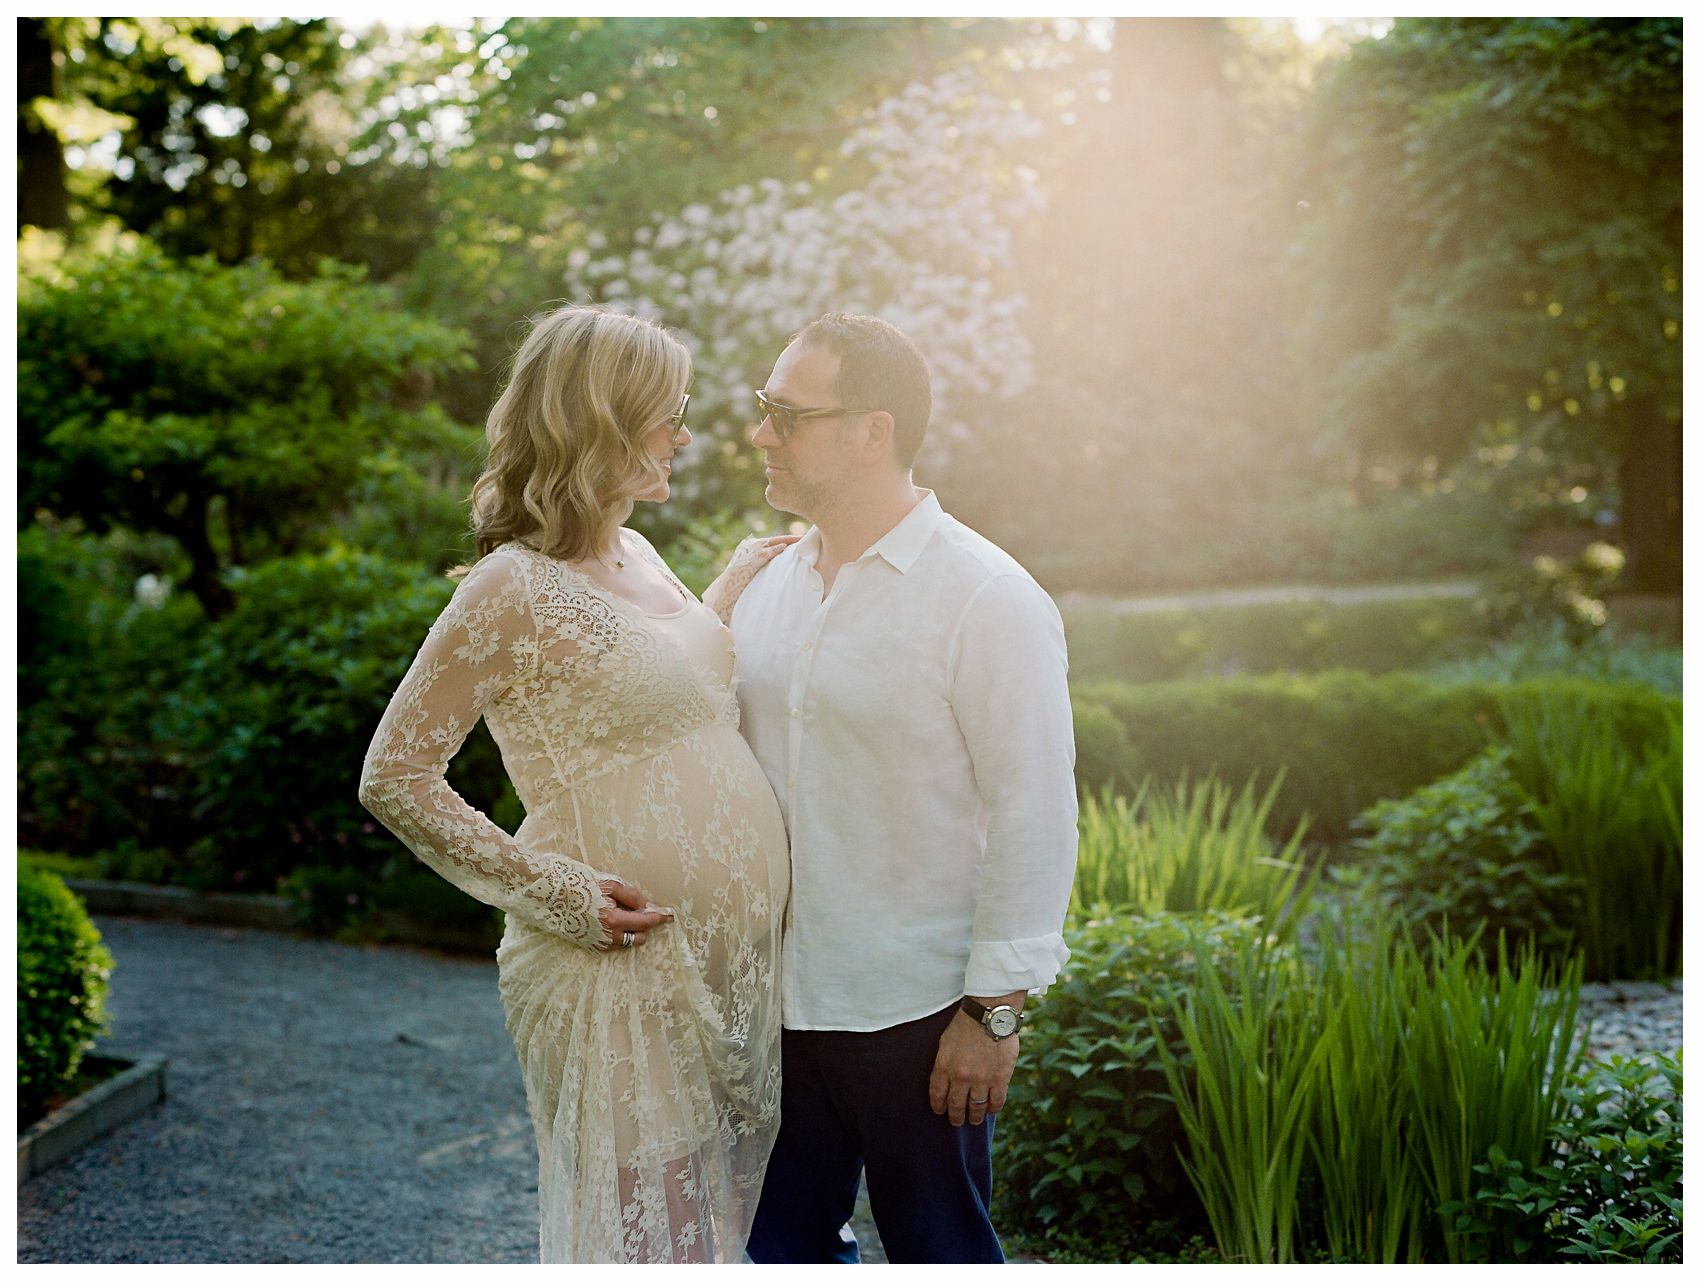 pregnant couple embracing in the maternity session at Van Vleck House & Gardens, Montclair NJ